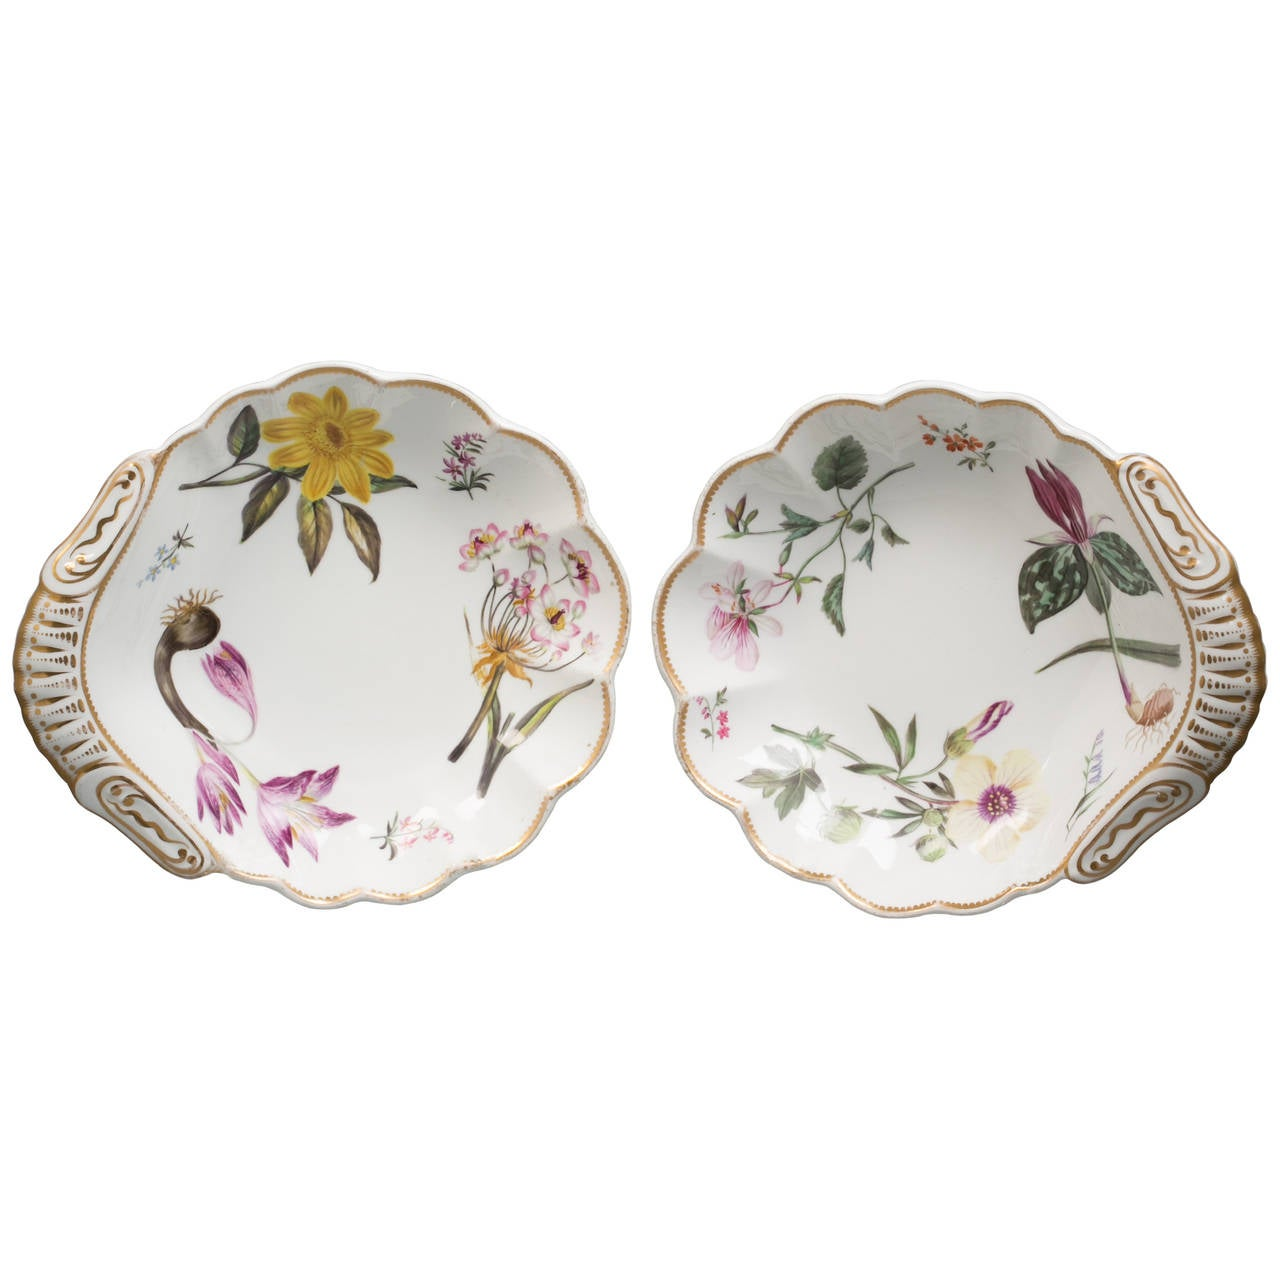 Pair of English Spode Porcelain Botanical Shell-Shape Dishes, circa 1820 For Sale